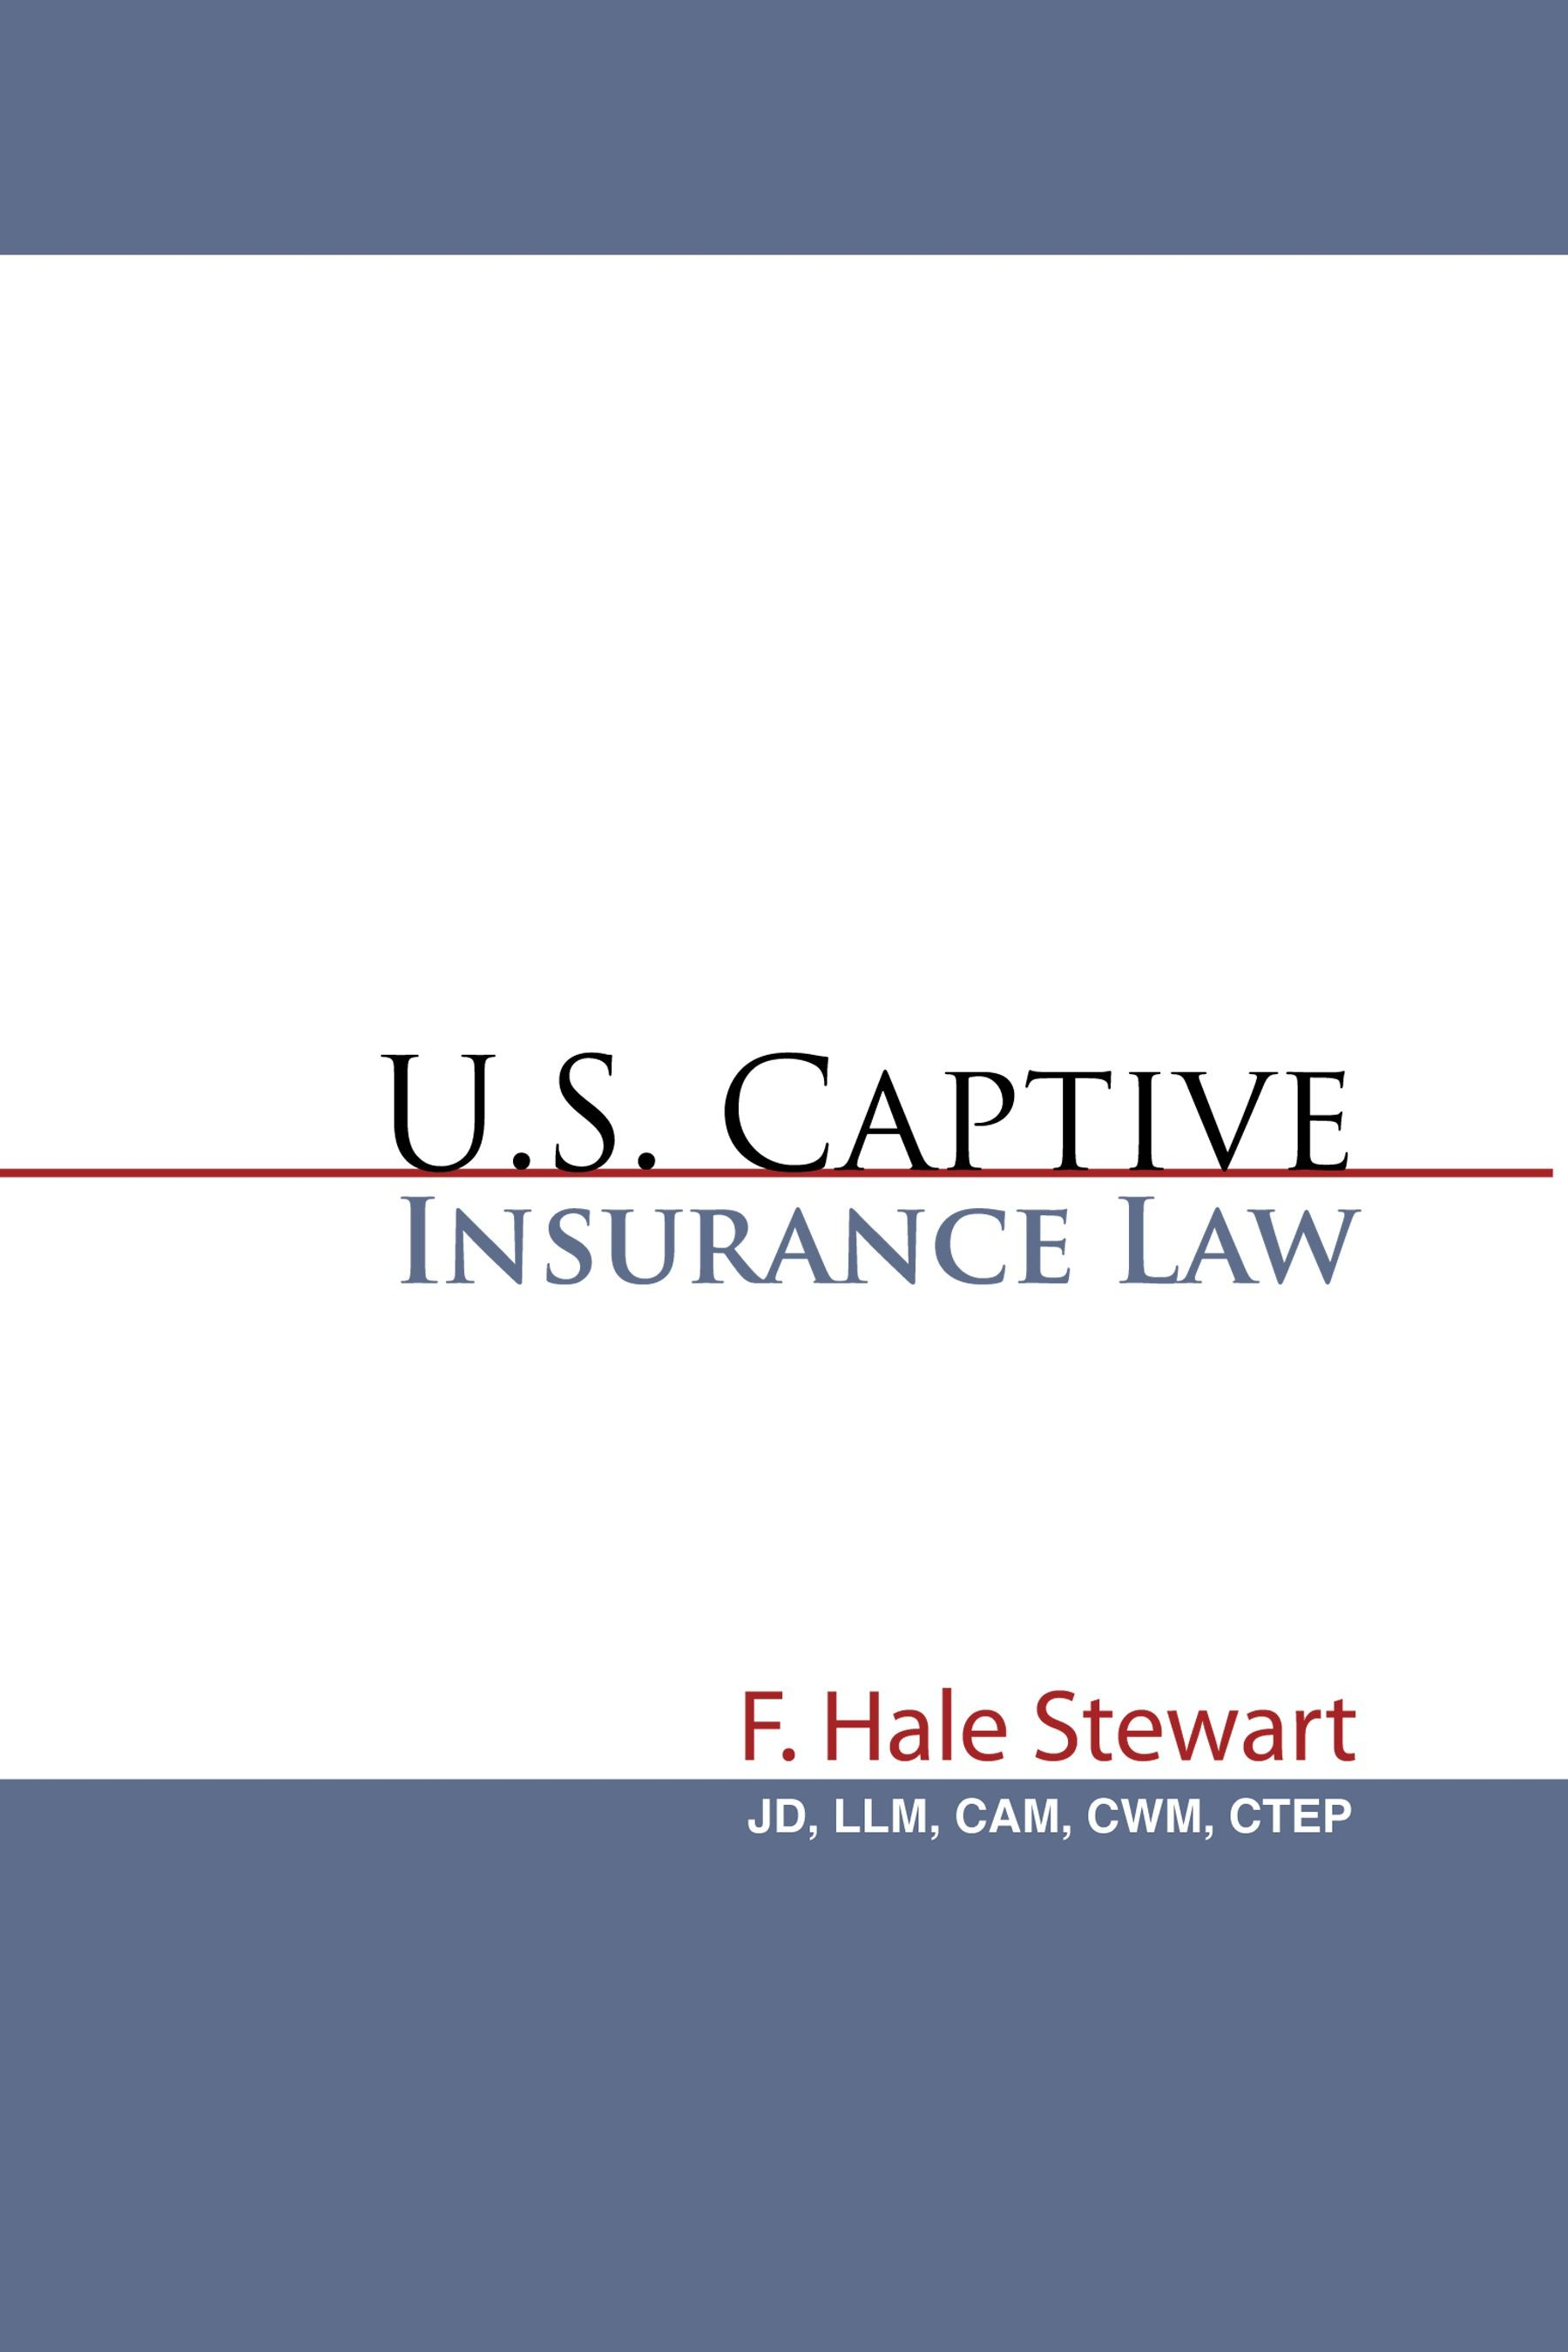 U.S. Captive Insurance Law By: F. Hale Stewart, JD, LLM, CAM, CWM, CTEP